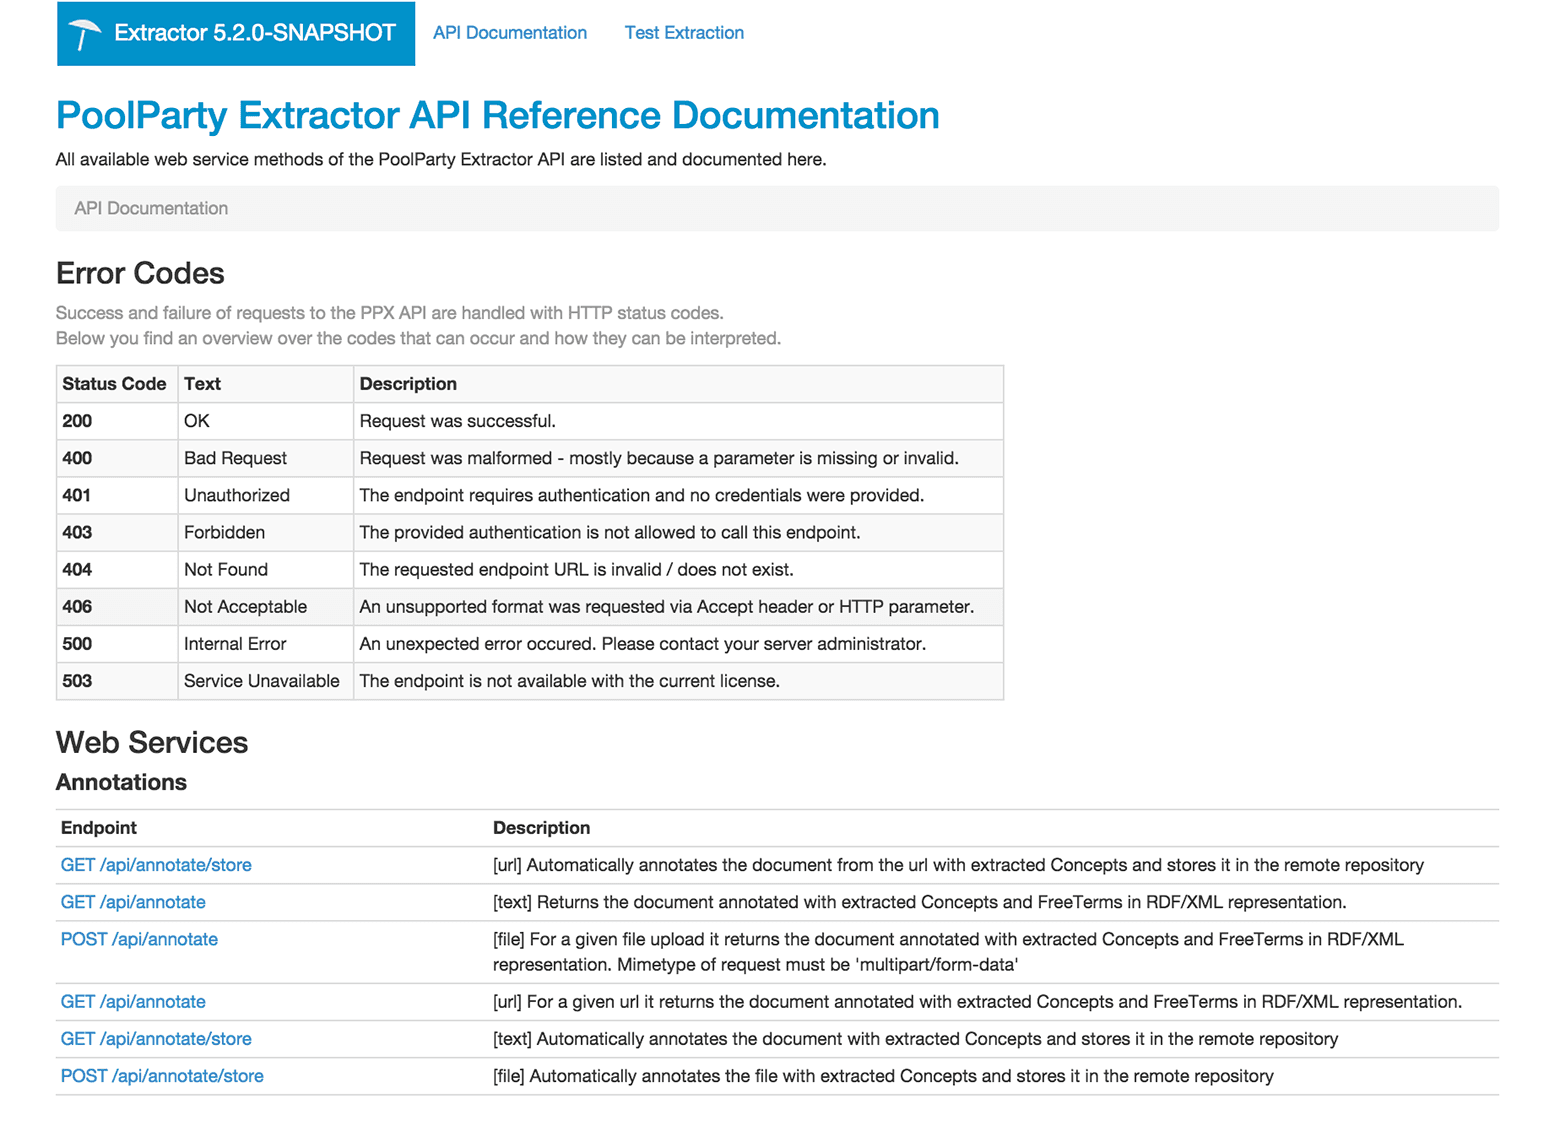 PoolParty Extractor API Reference Documentation image